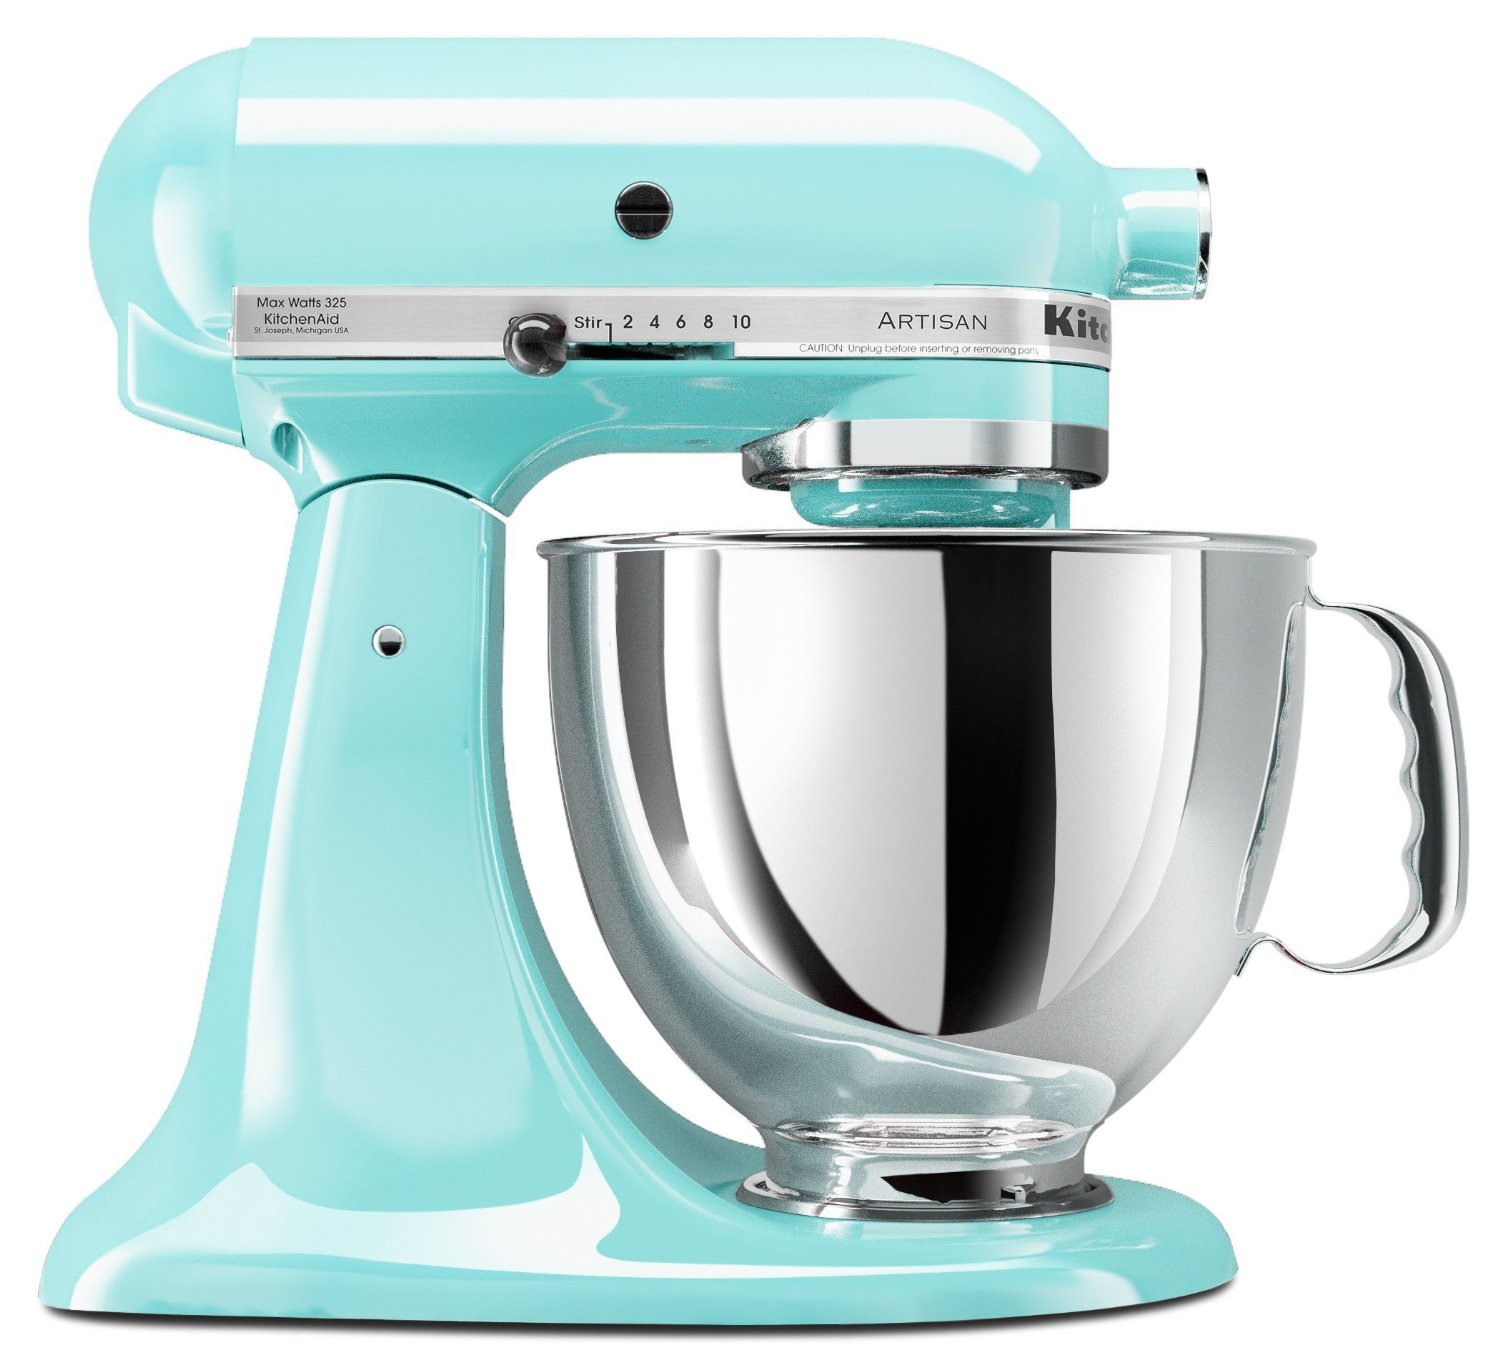 Kitchenmaid mixer photo - 3